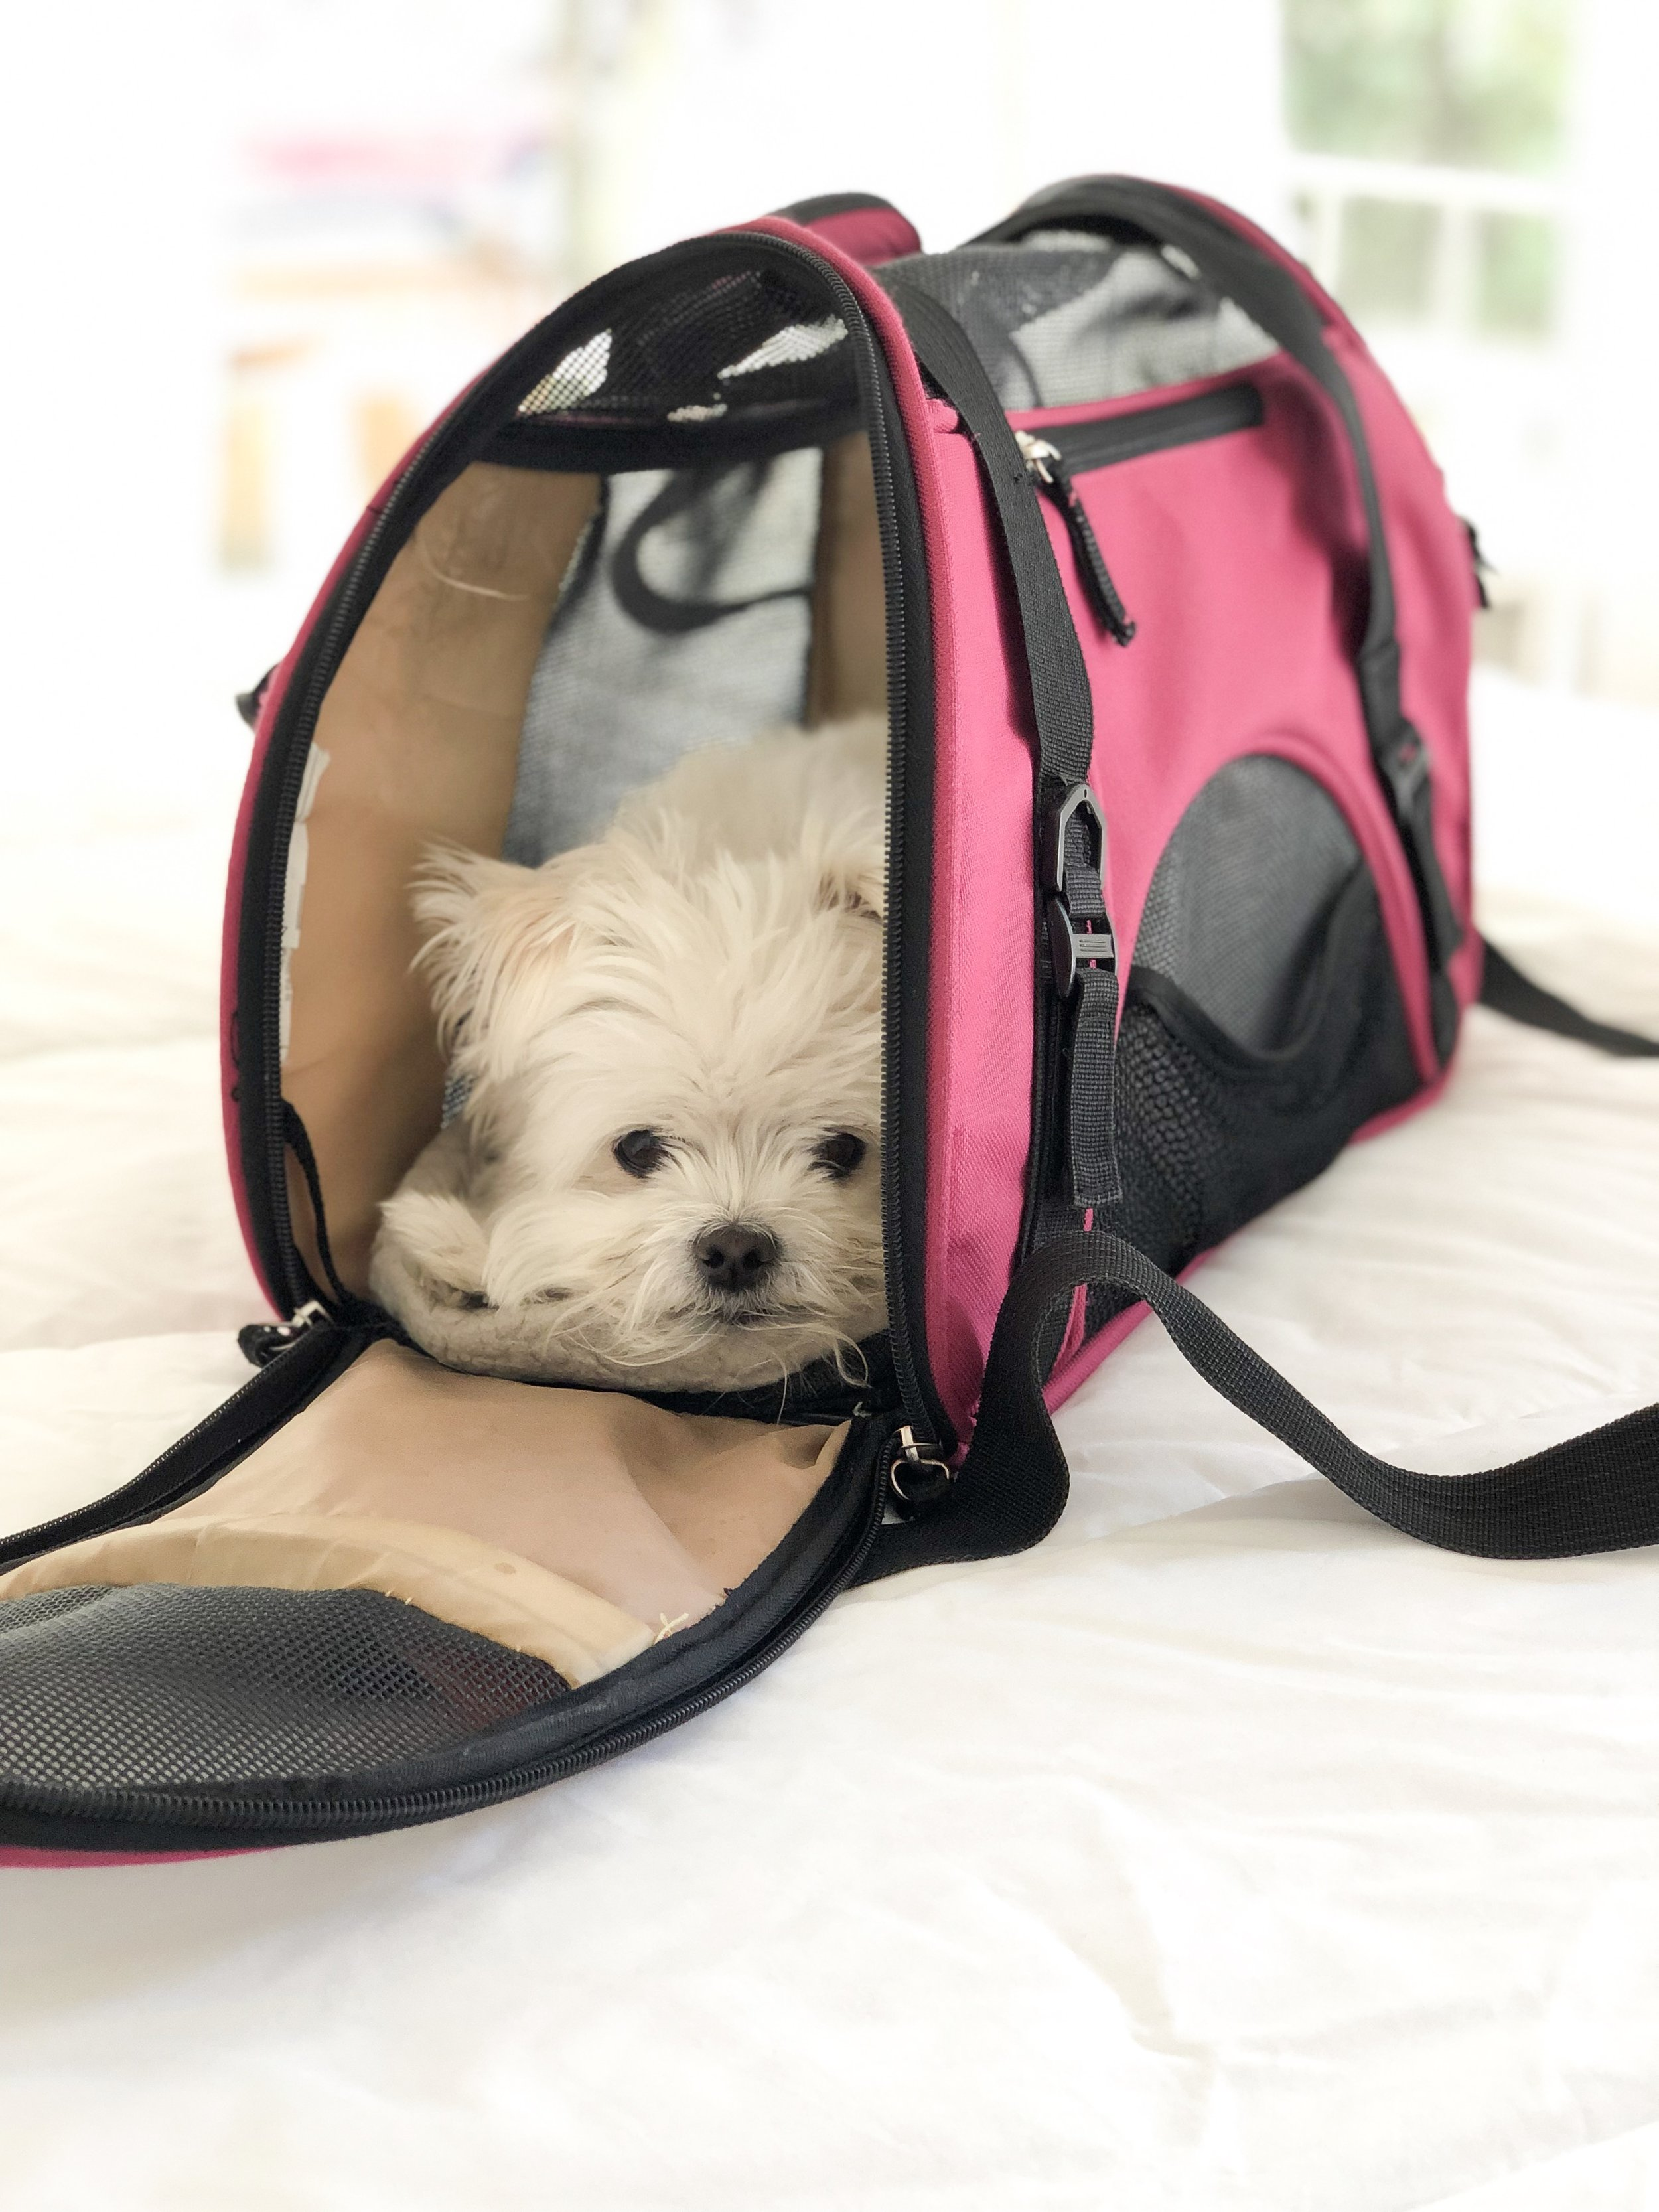 tips for flying with small dogs